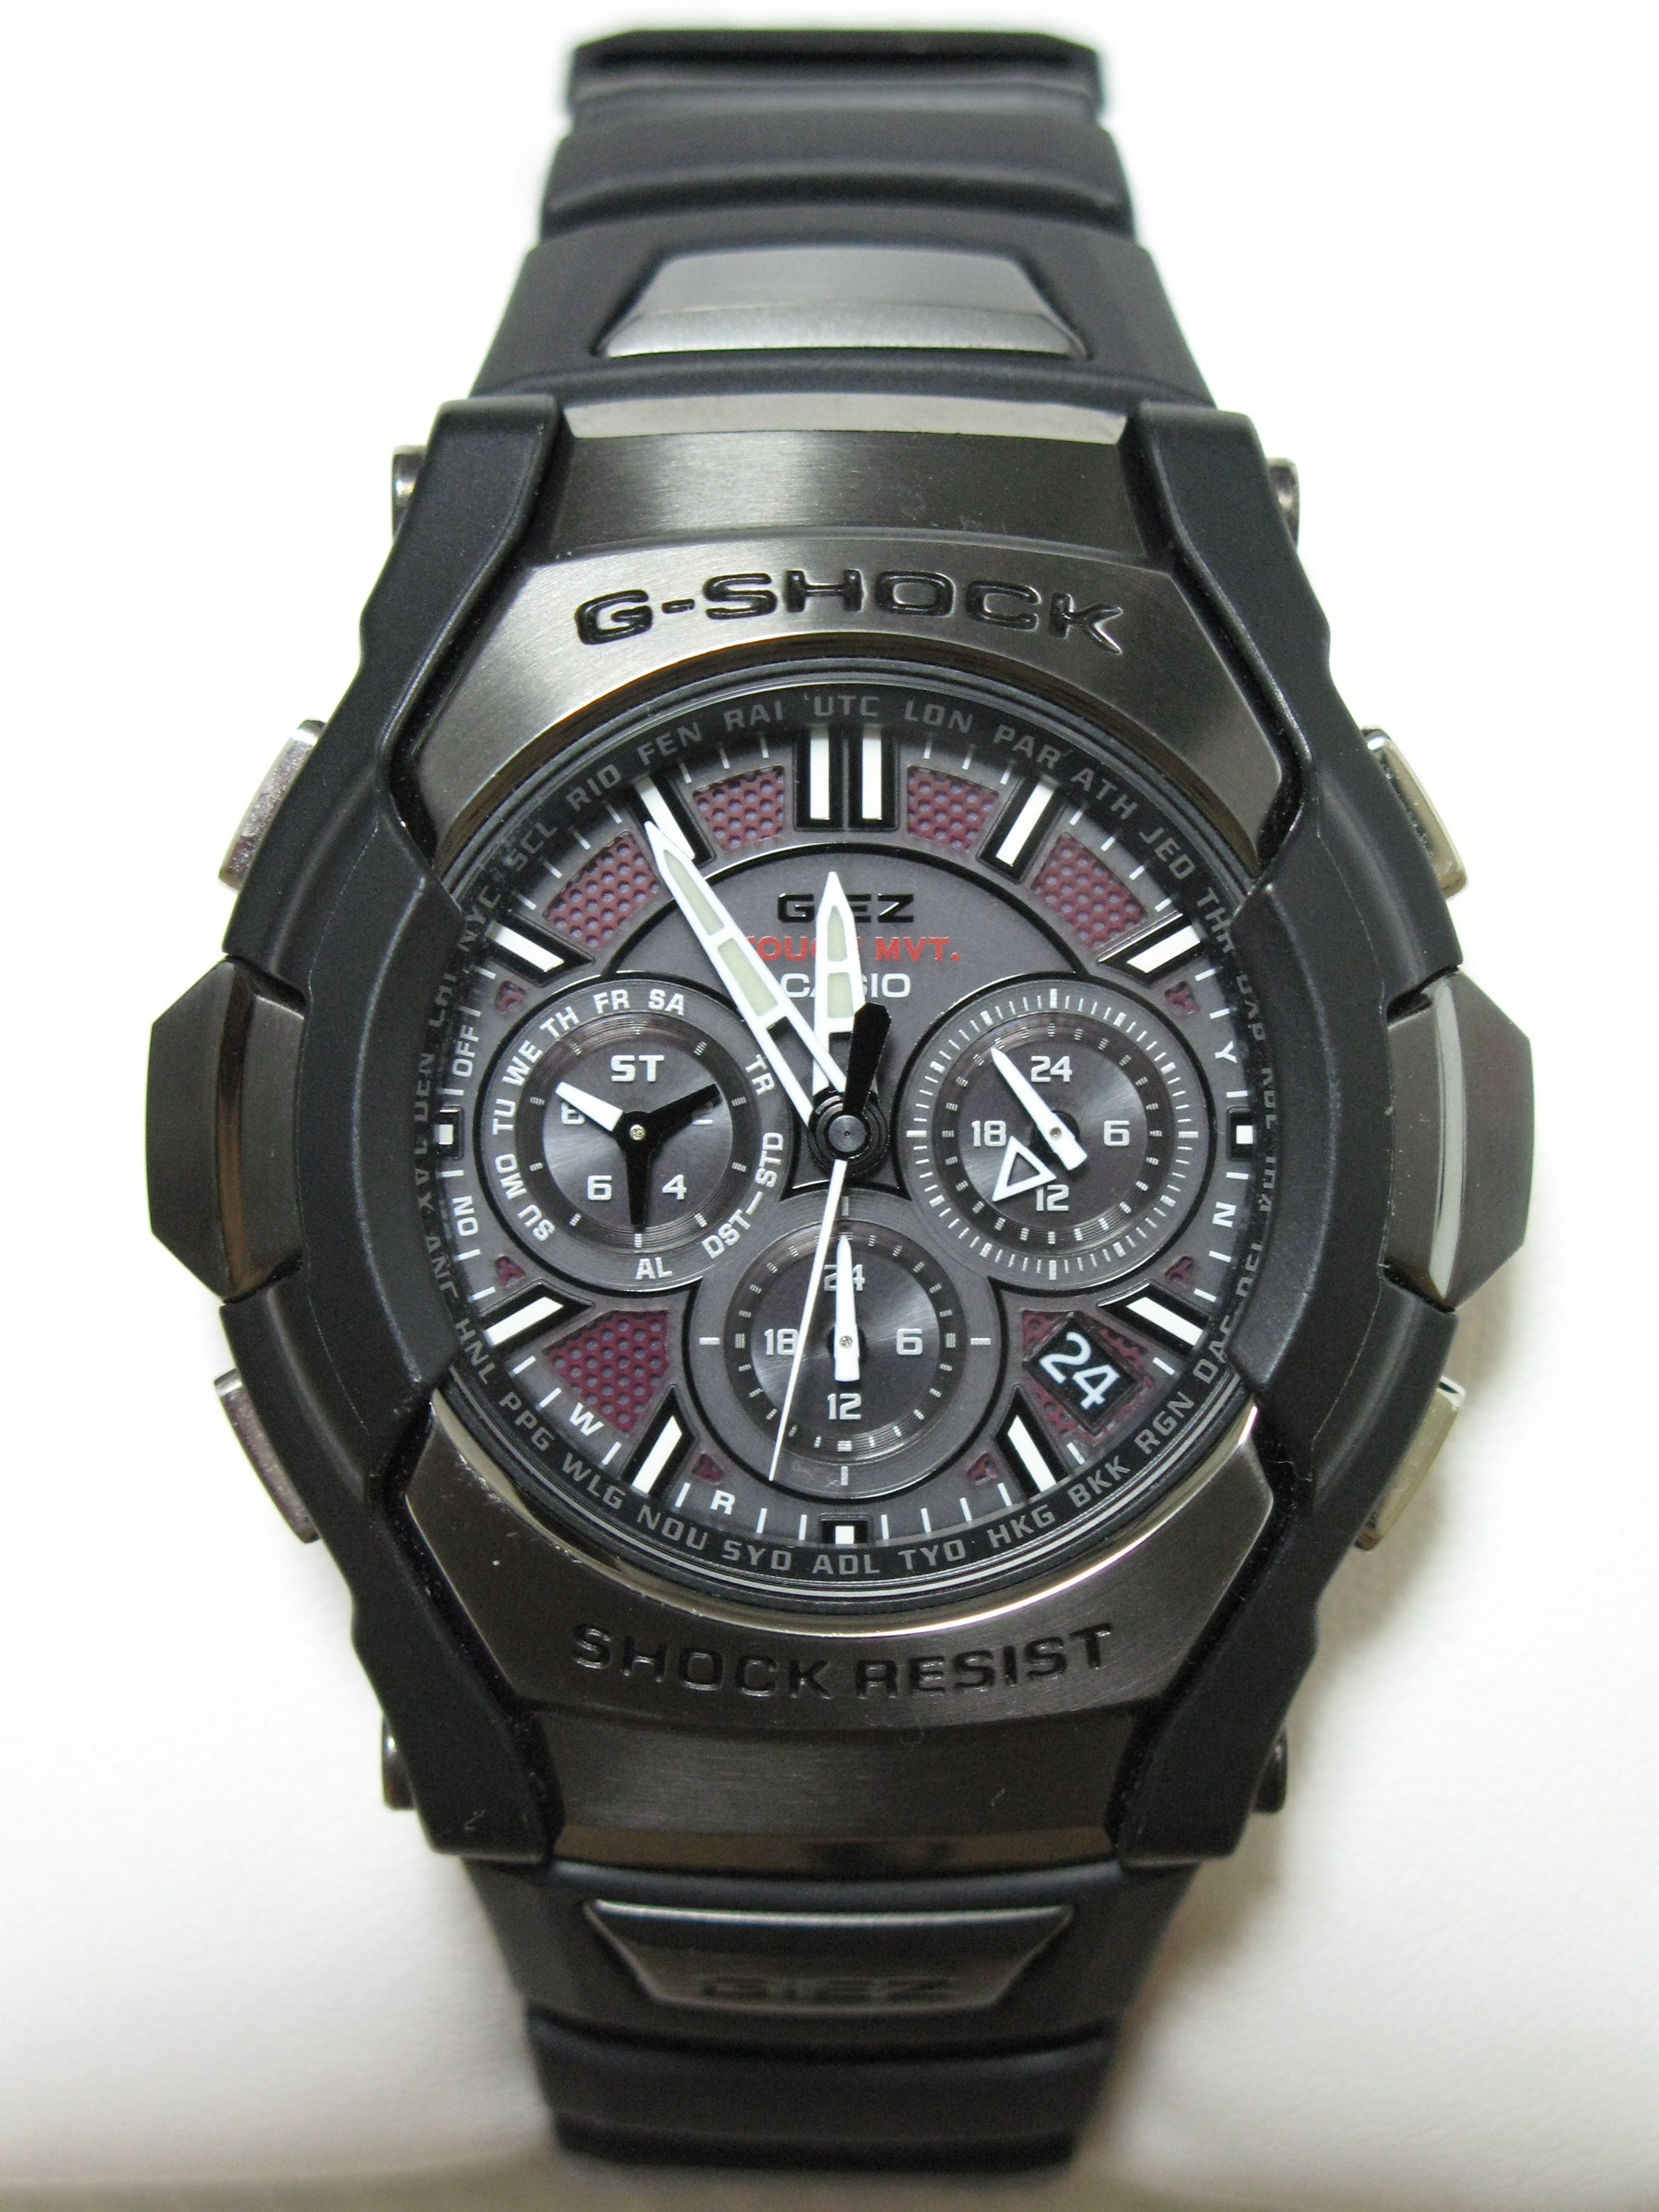 Description CASIO G SHOCK GS 1300B 1AJF 01 JPG